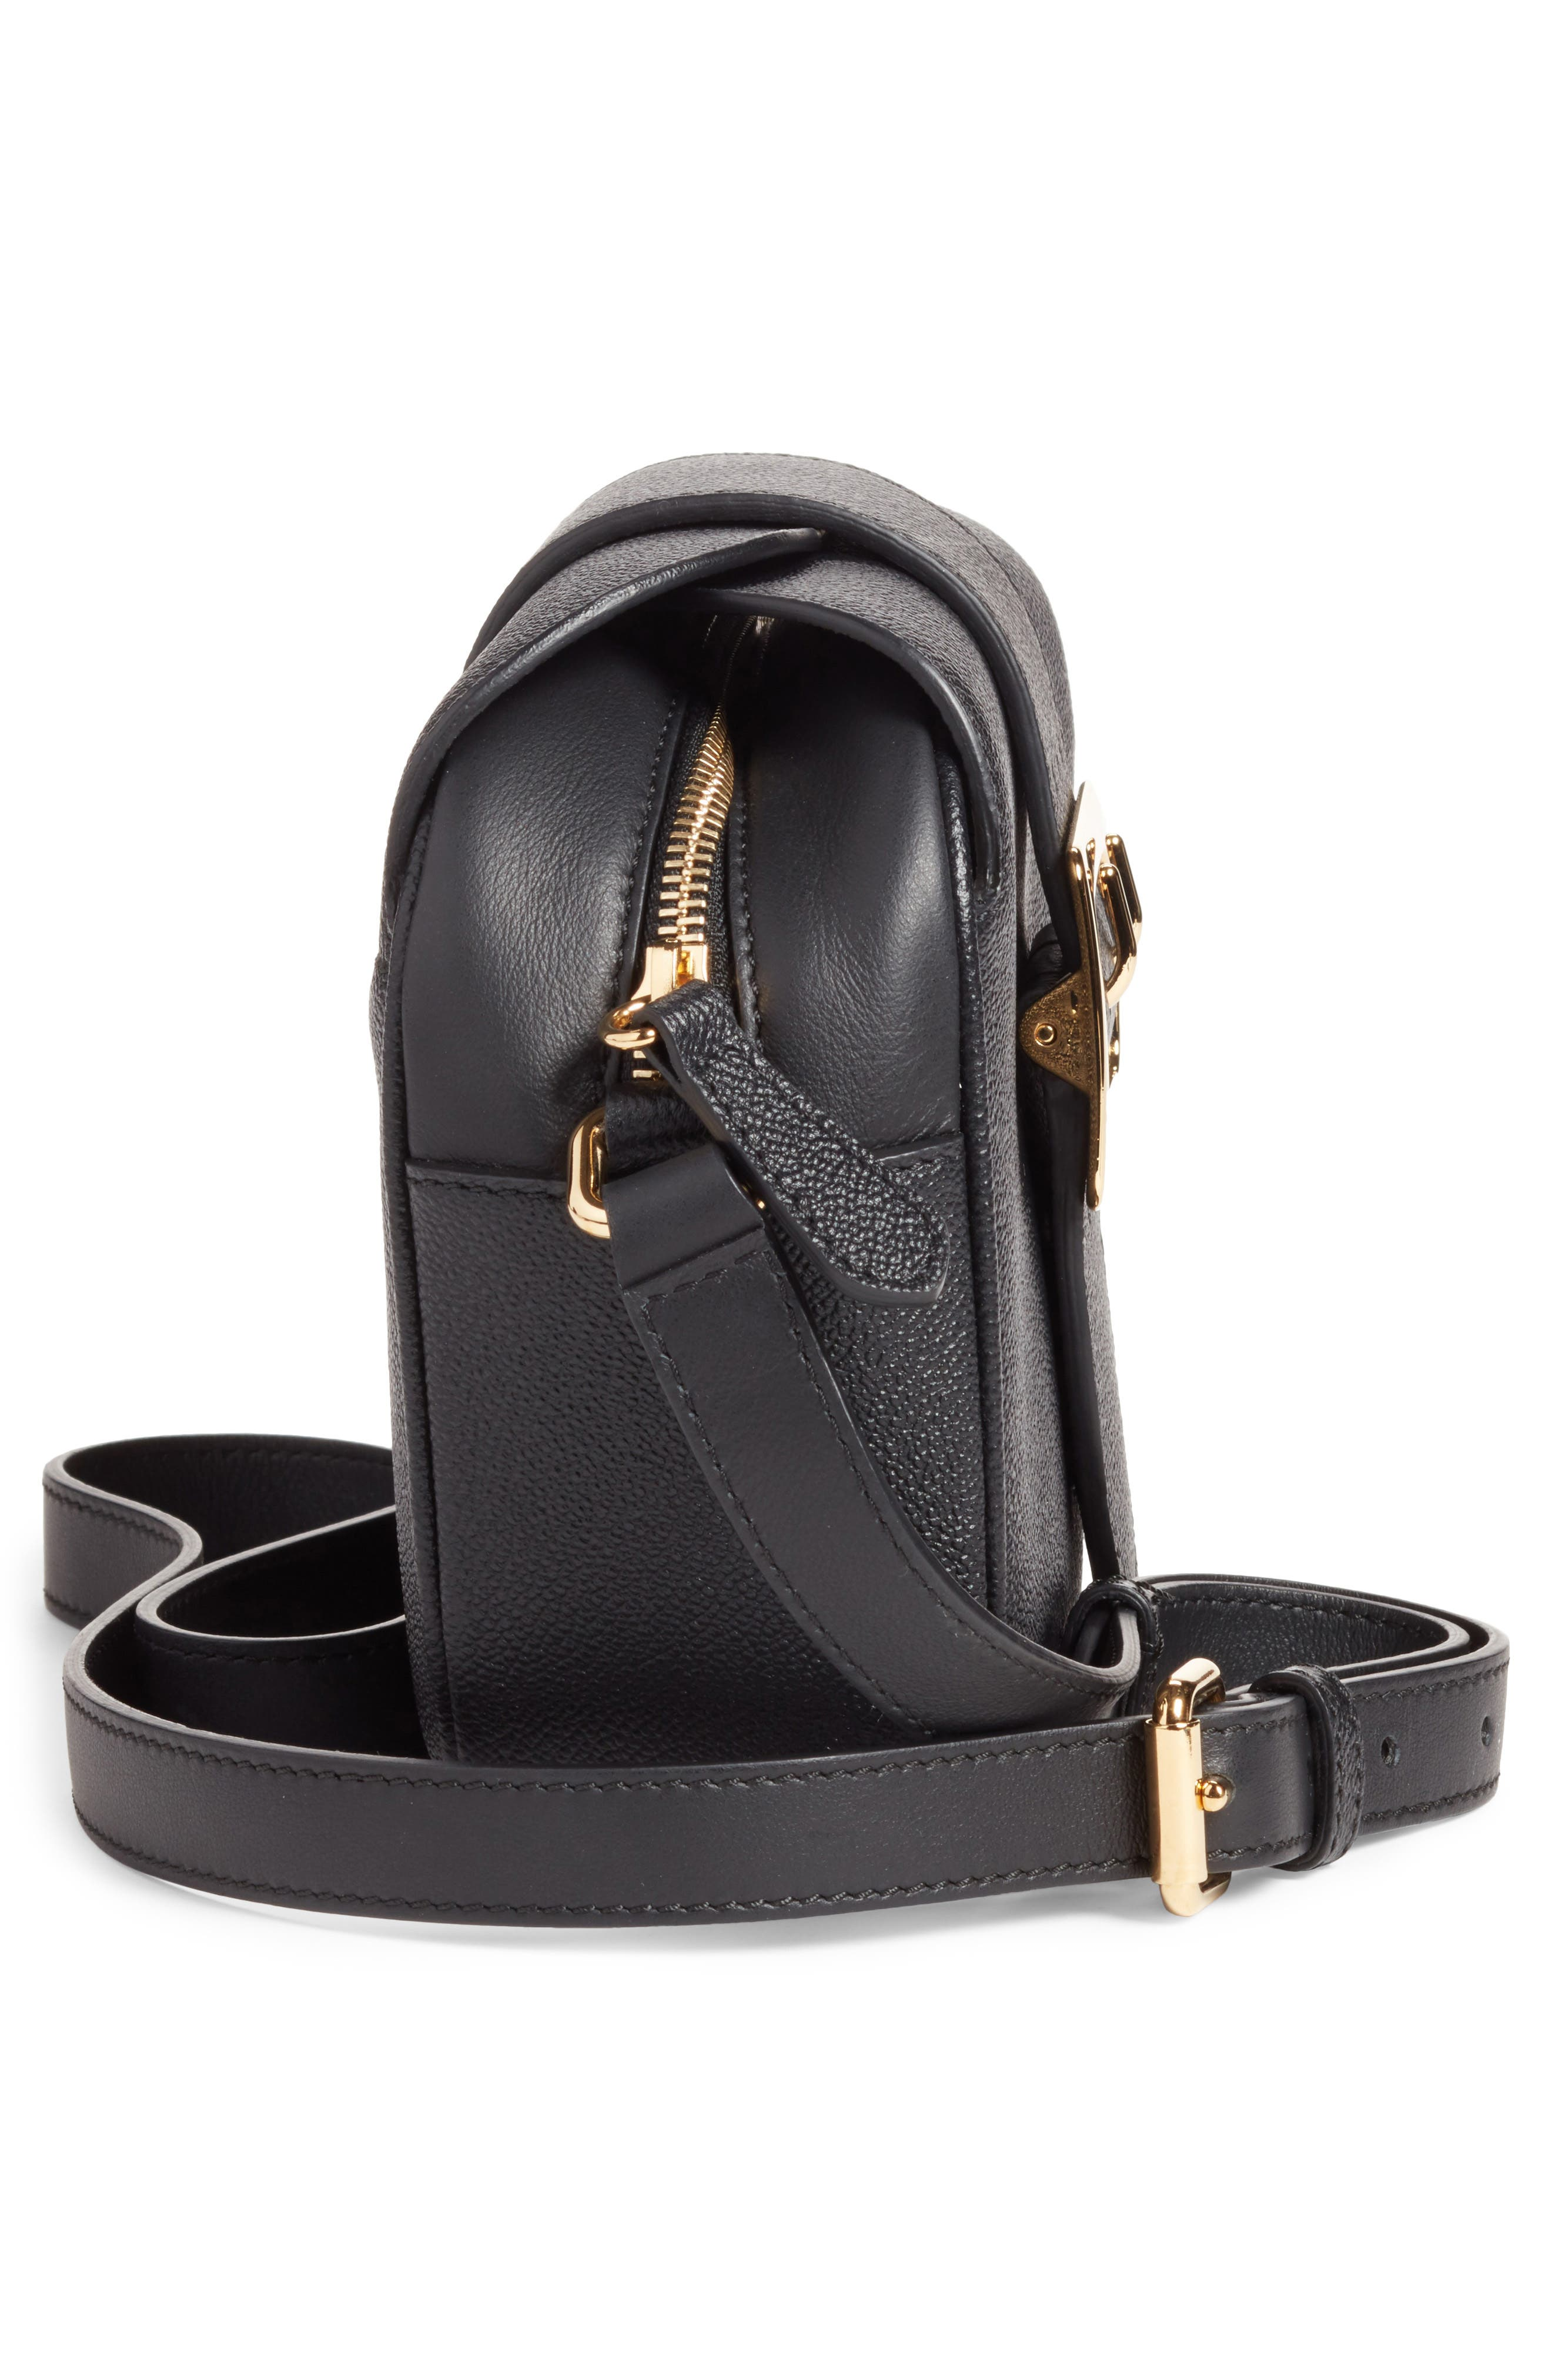 Small Buckle Leather Crossbody Bag,                             Alternate thumbnail 4, color,                             001